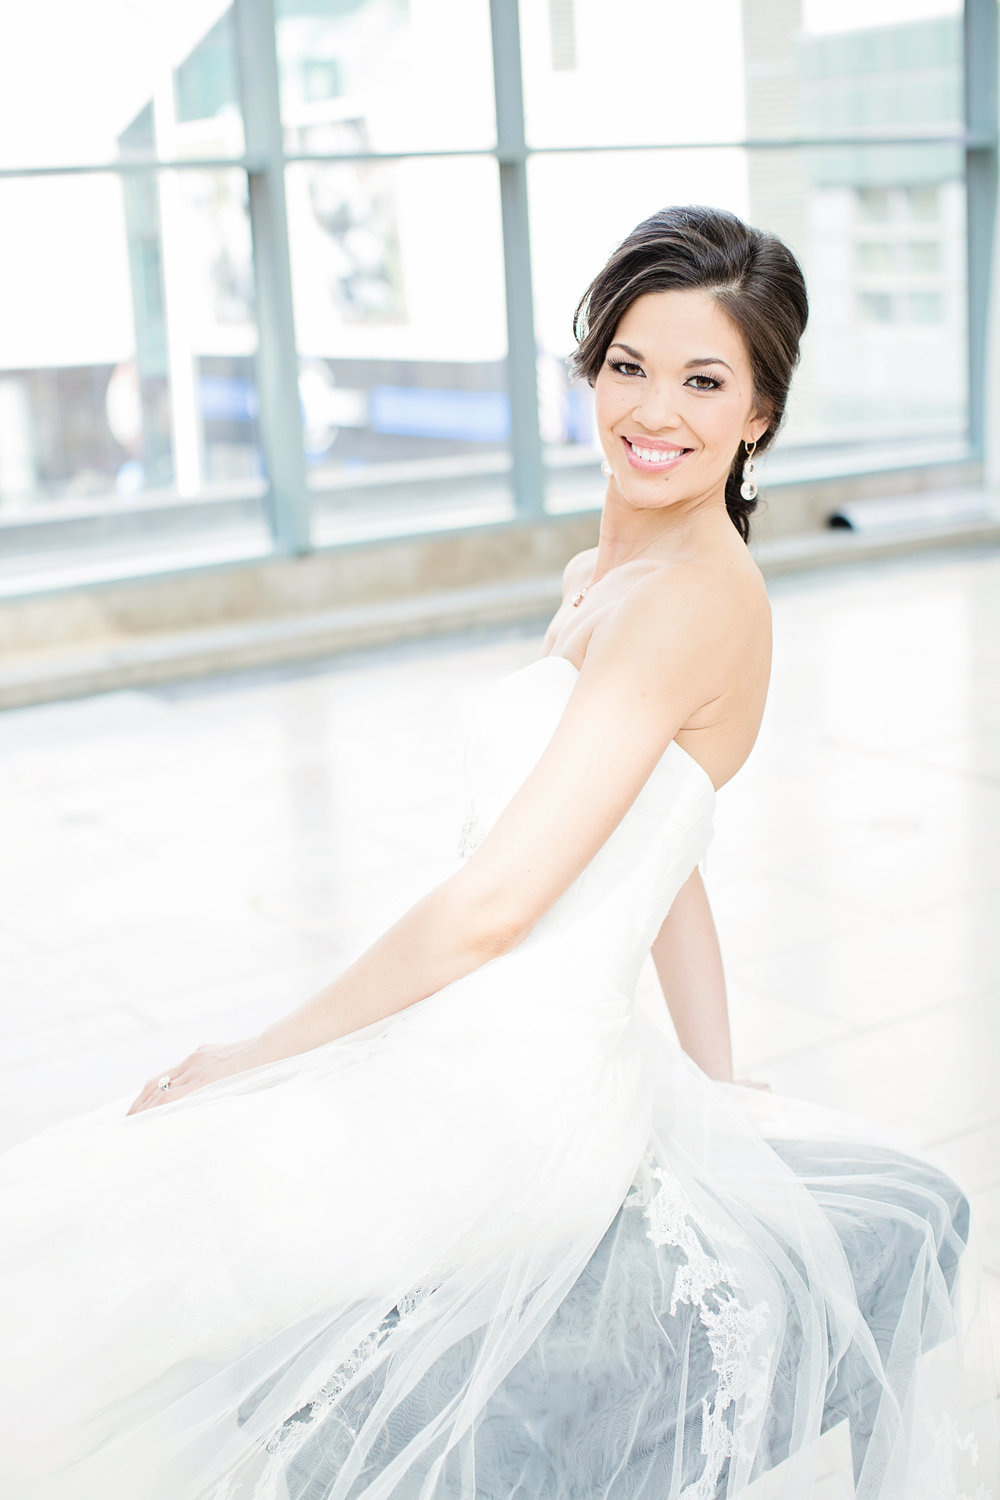 g-michael-salon-shoot-052914-bride-sit.jpg